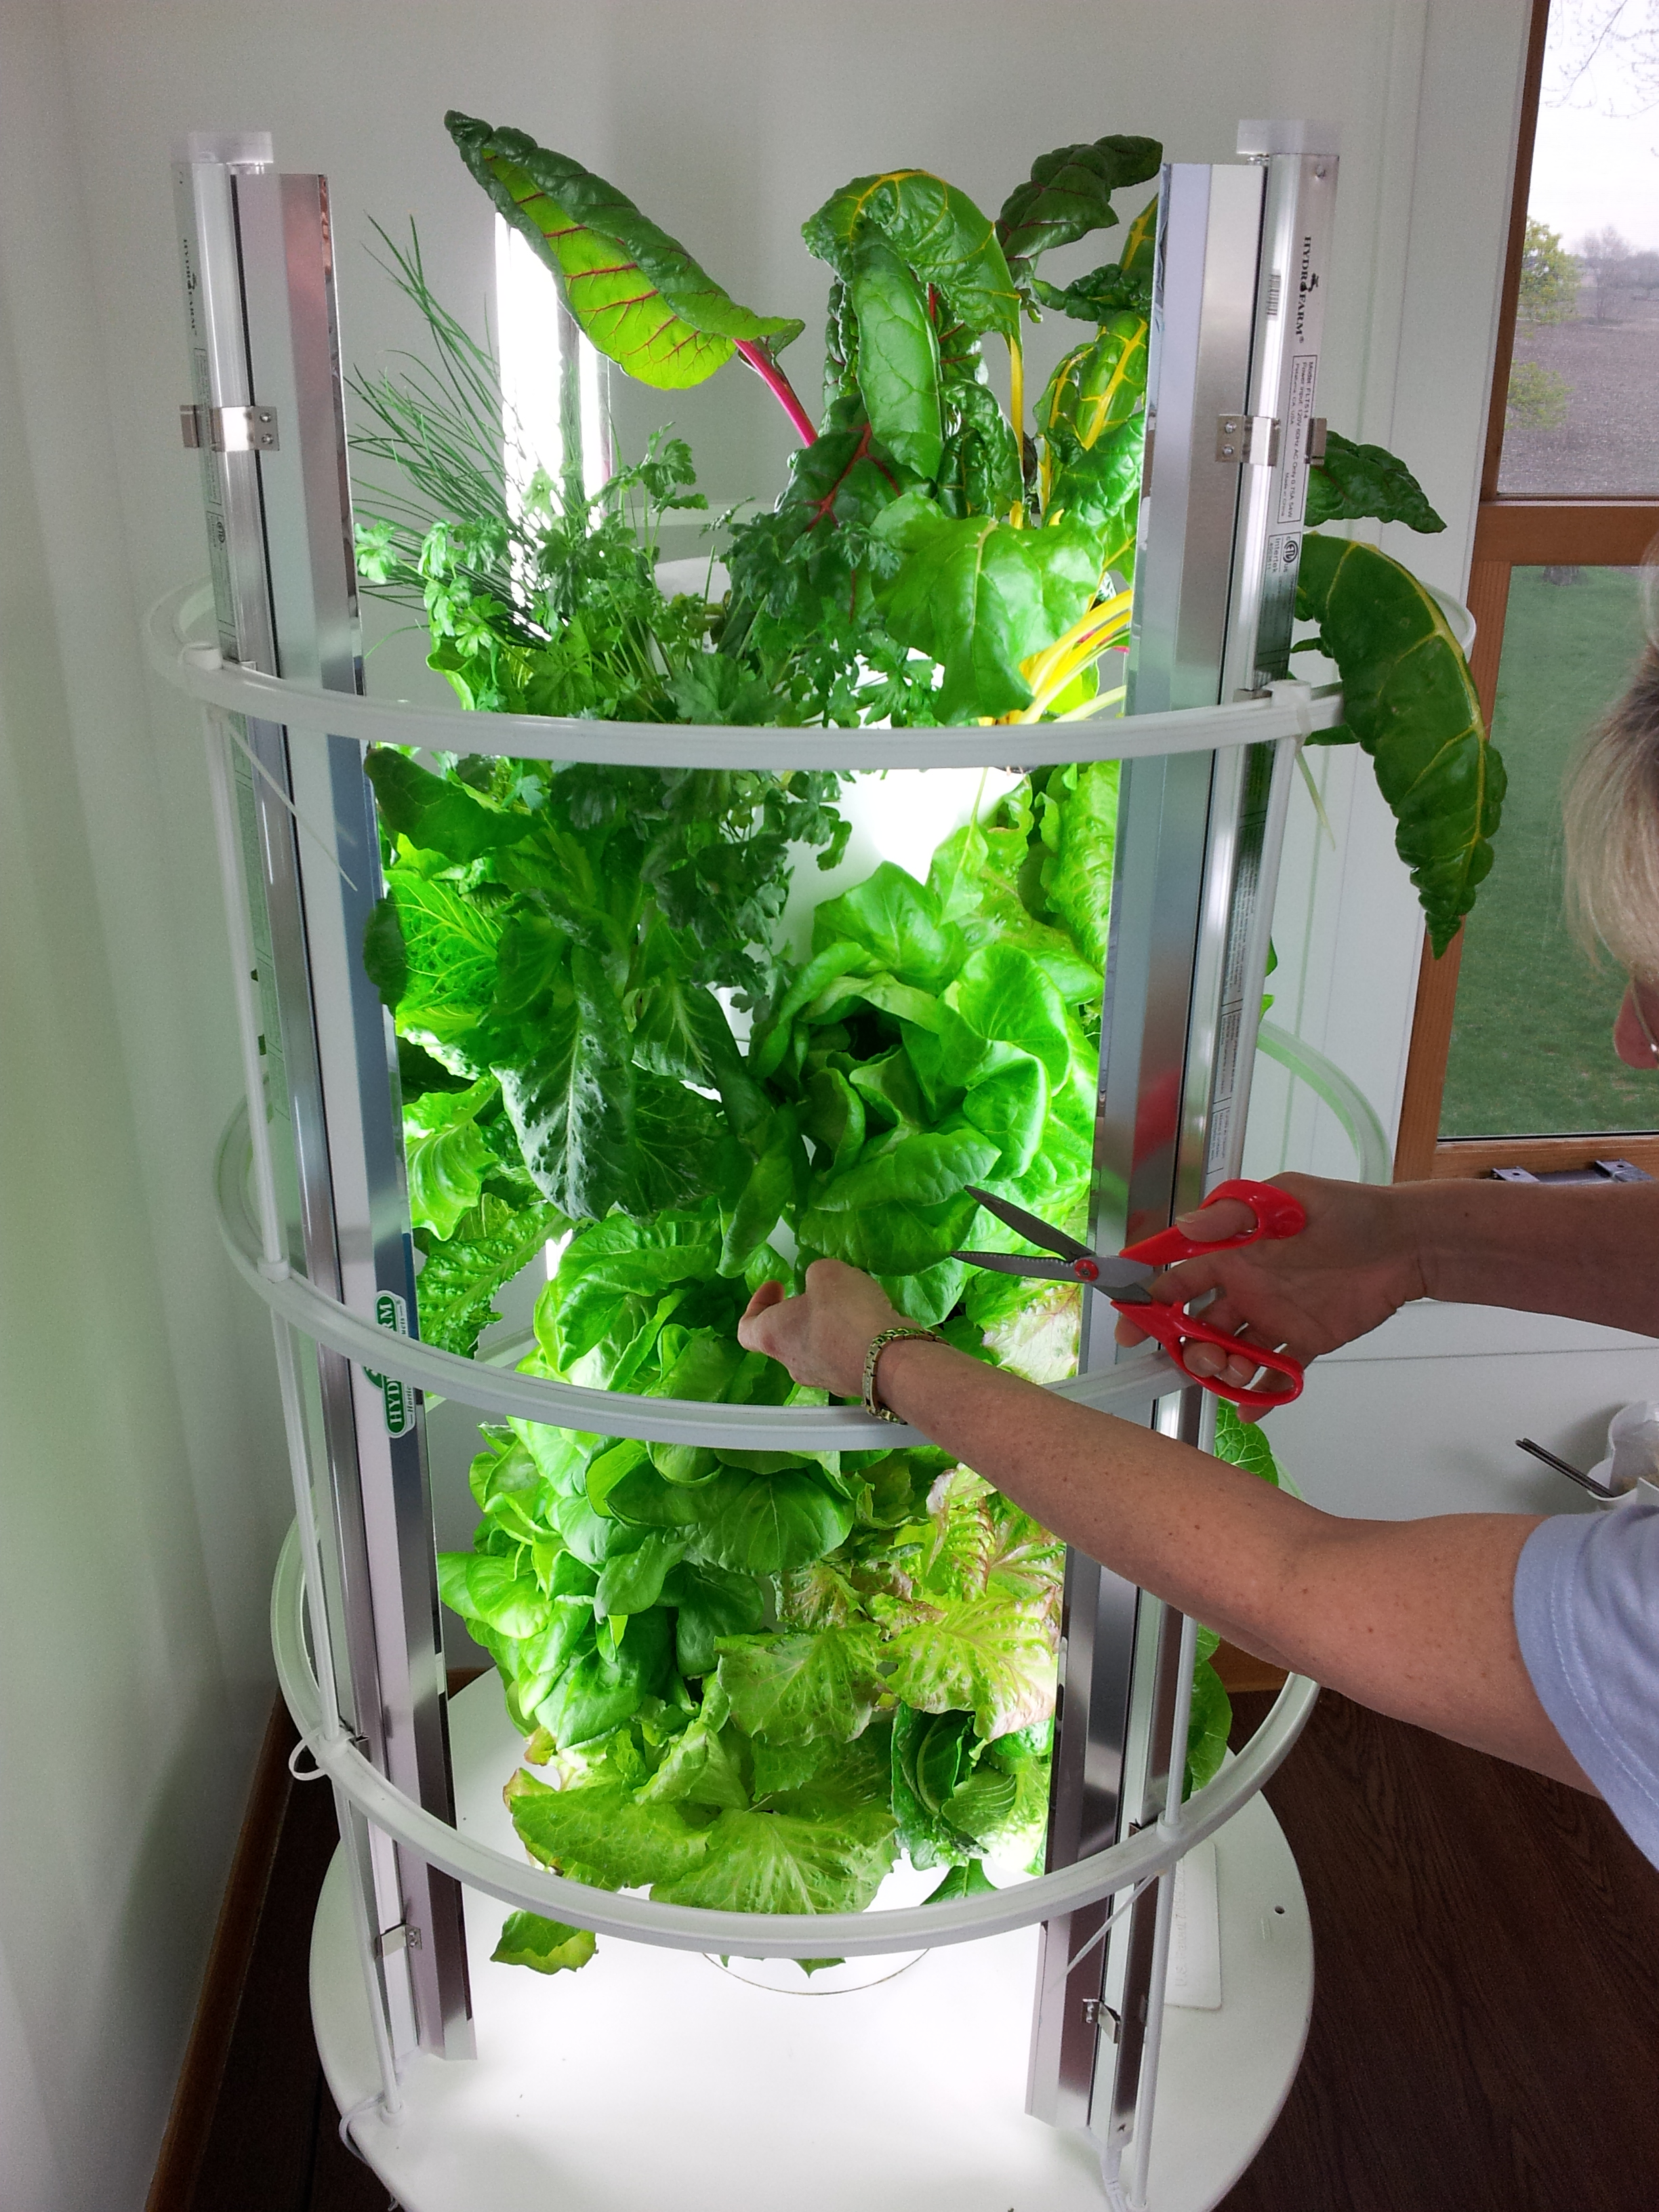 janet johnsons tower garden - Tower Garden